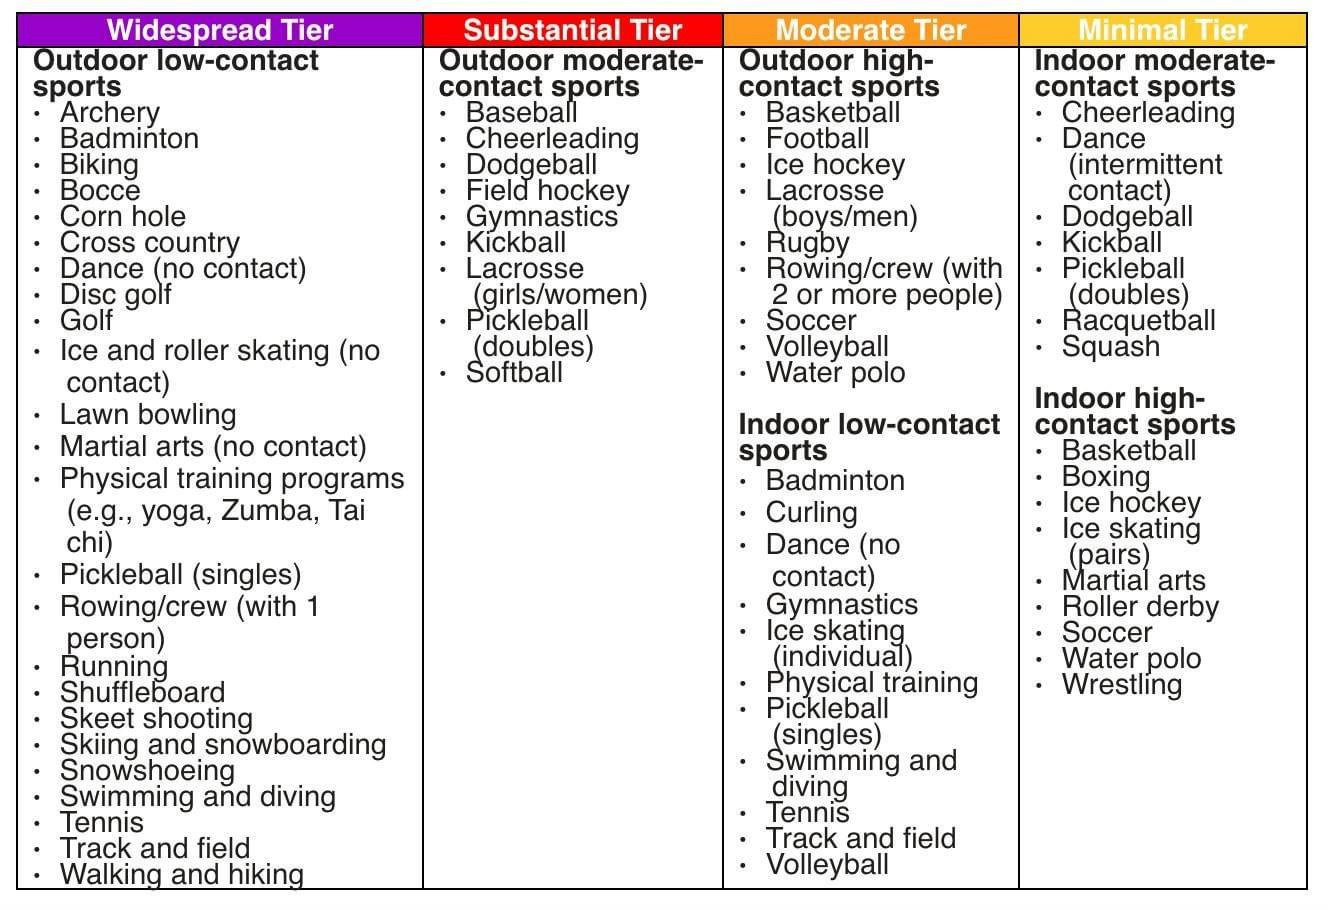 This graphic shows what sports can be played based on a county's tier color.